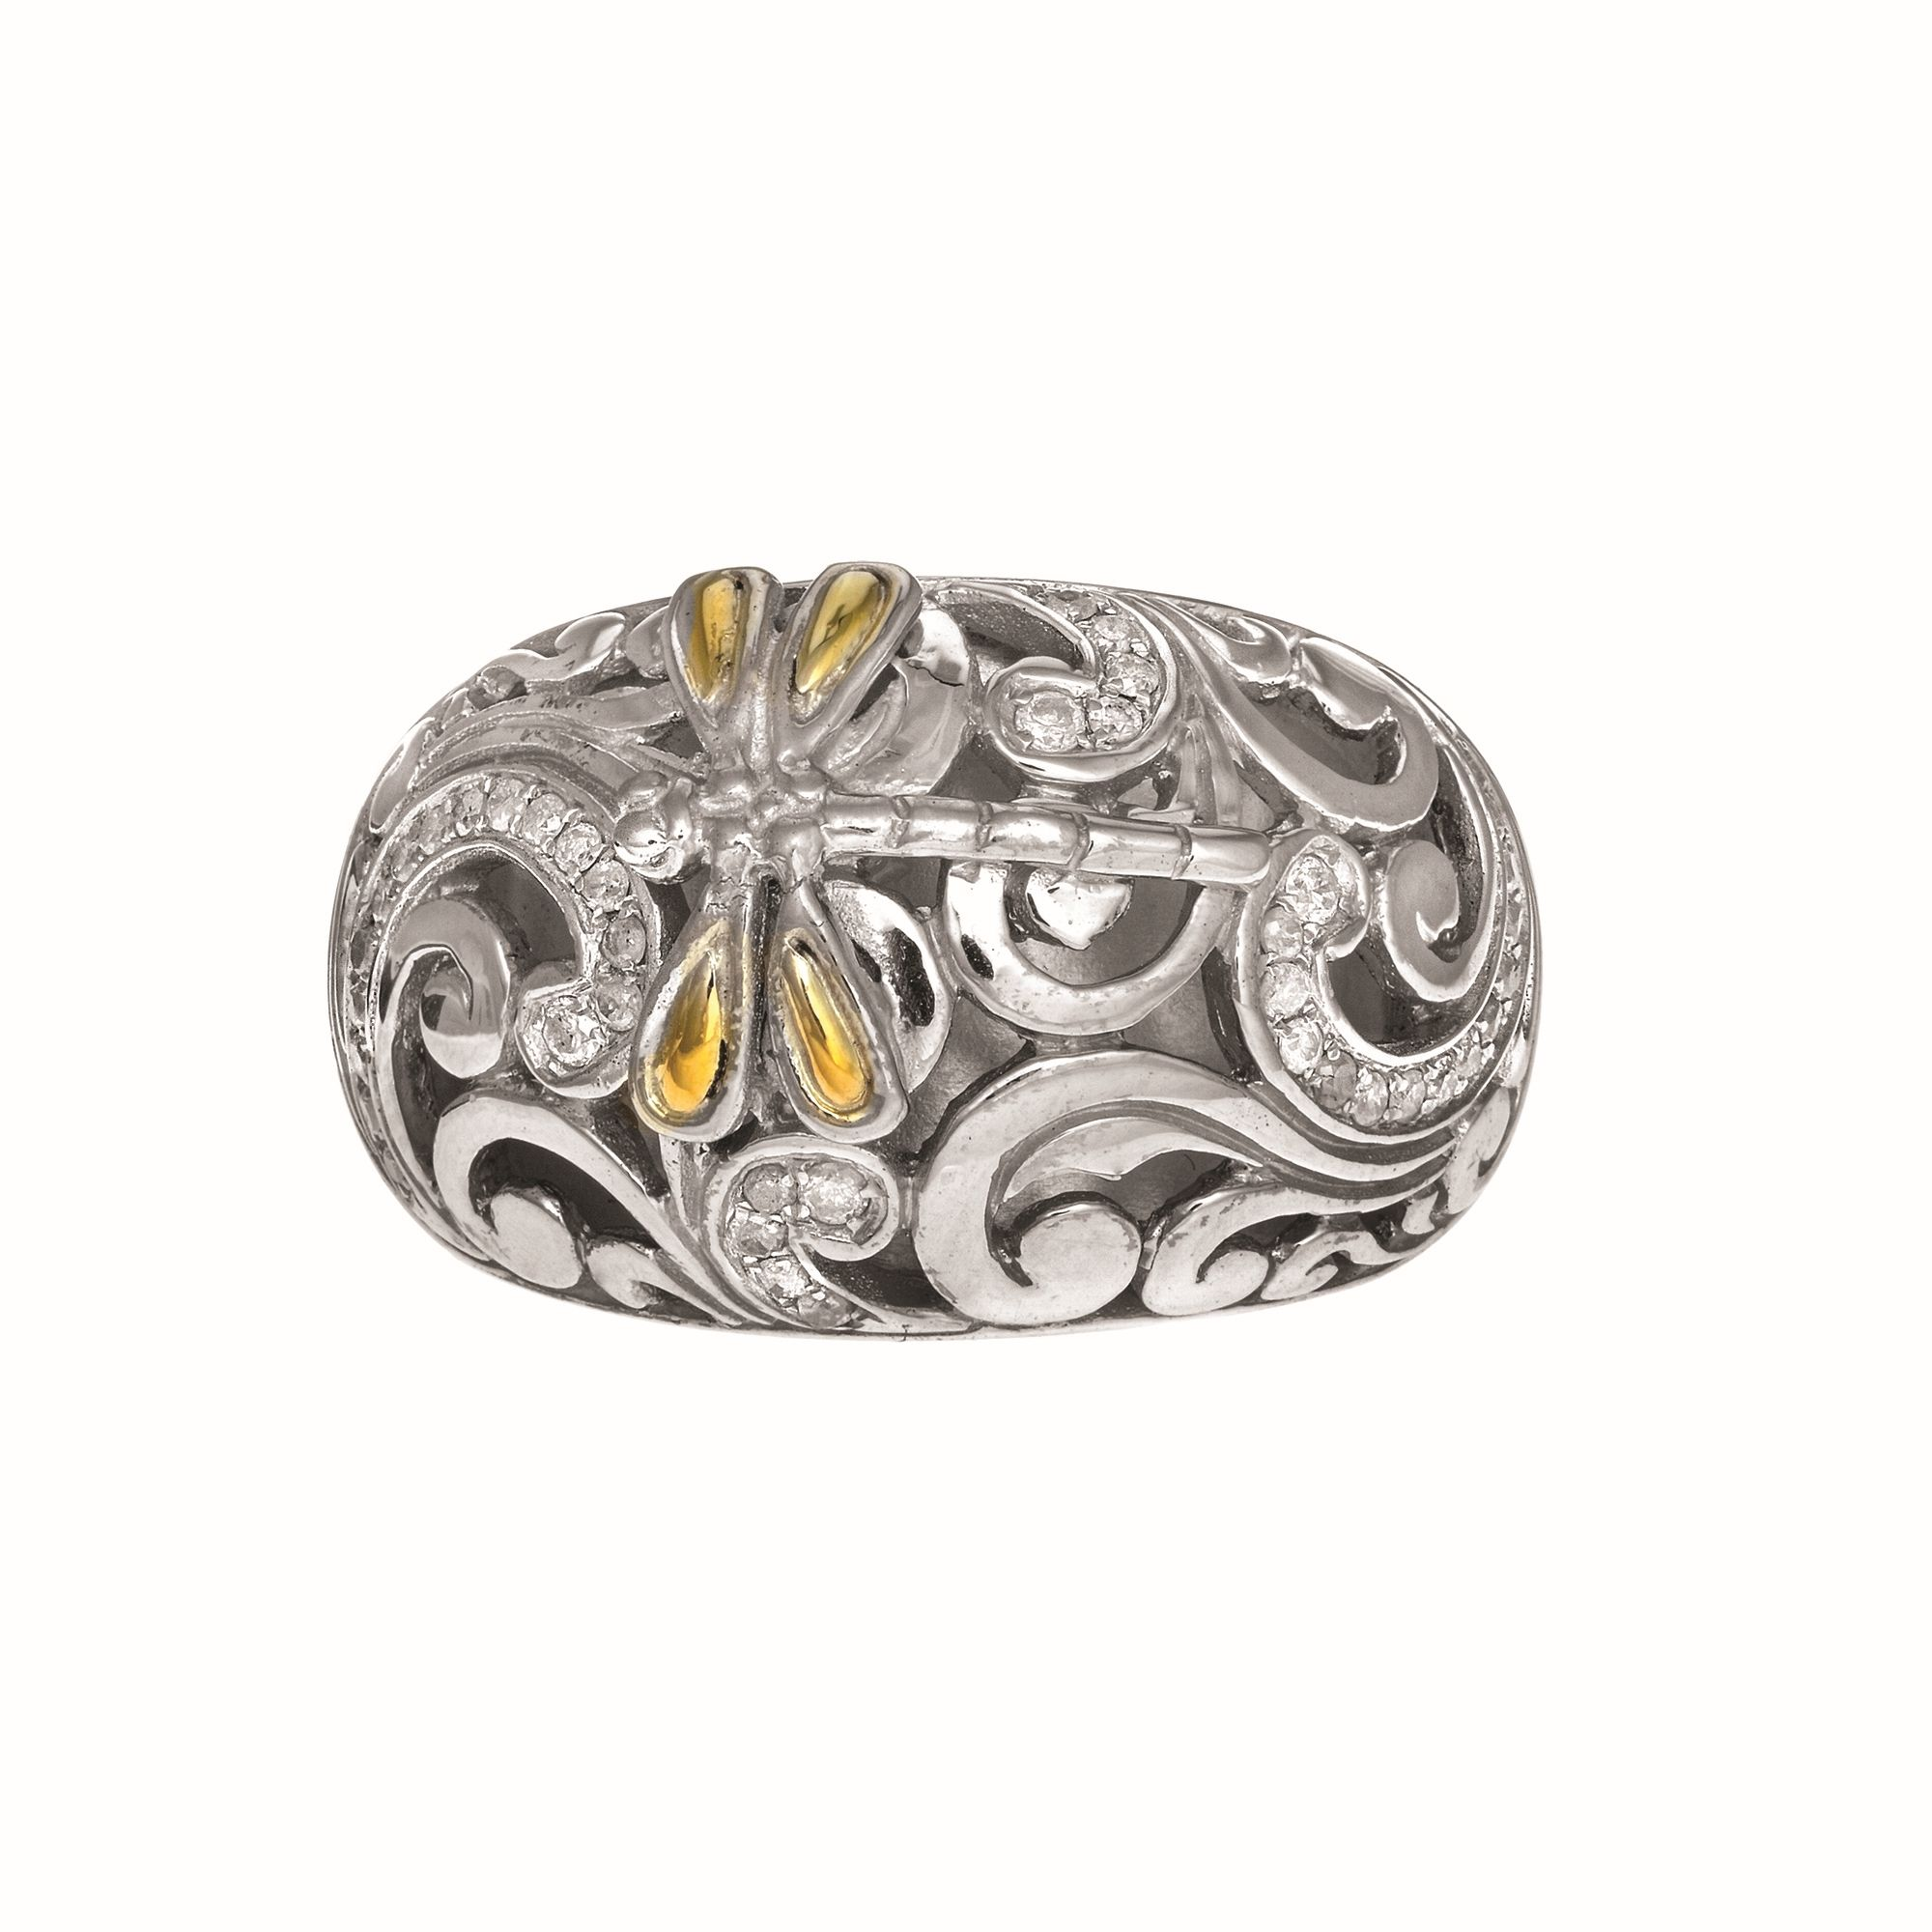 18K Yellow & White Gold Ring James Wolf Jewelers Mason, OH